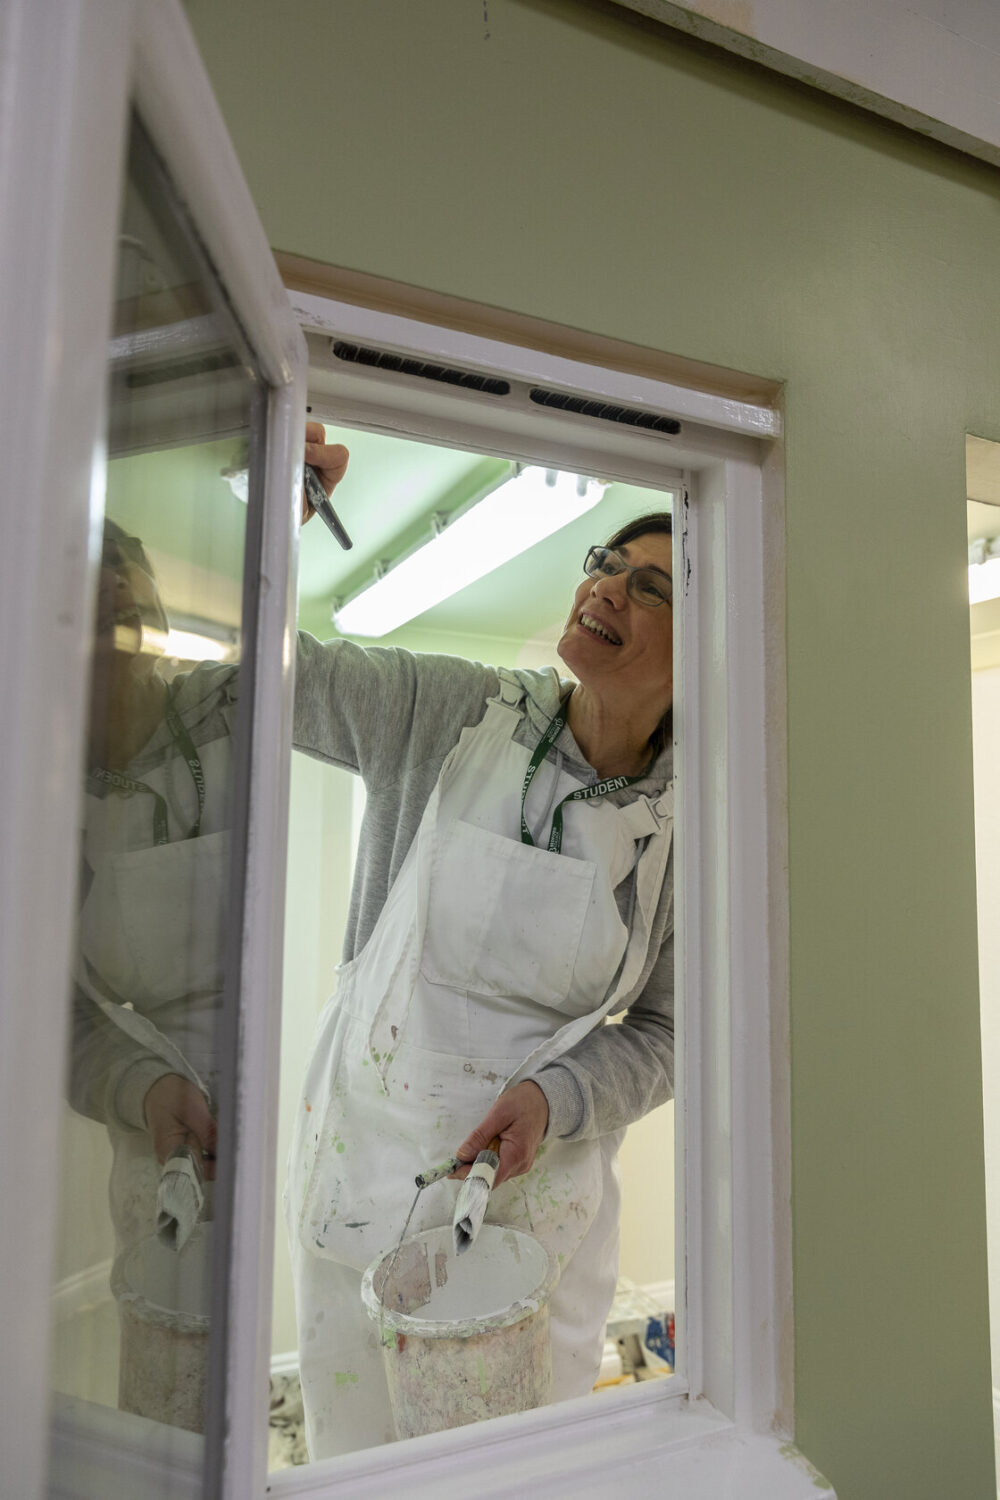 Female painting and Decorating Bedford College student